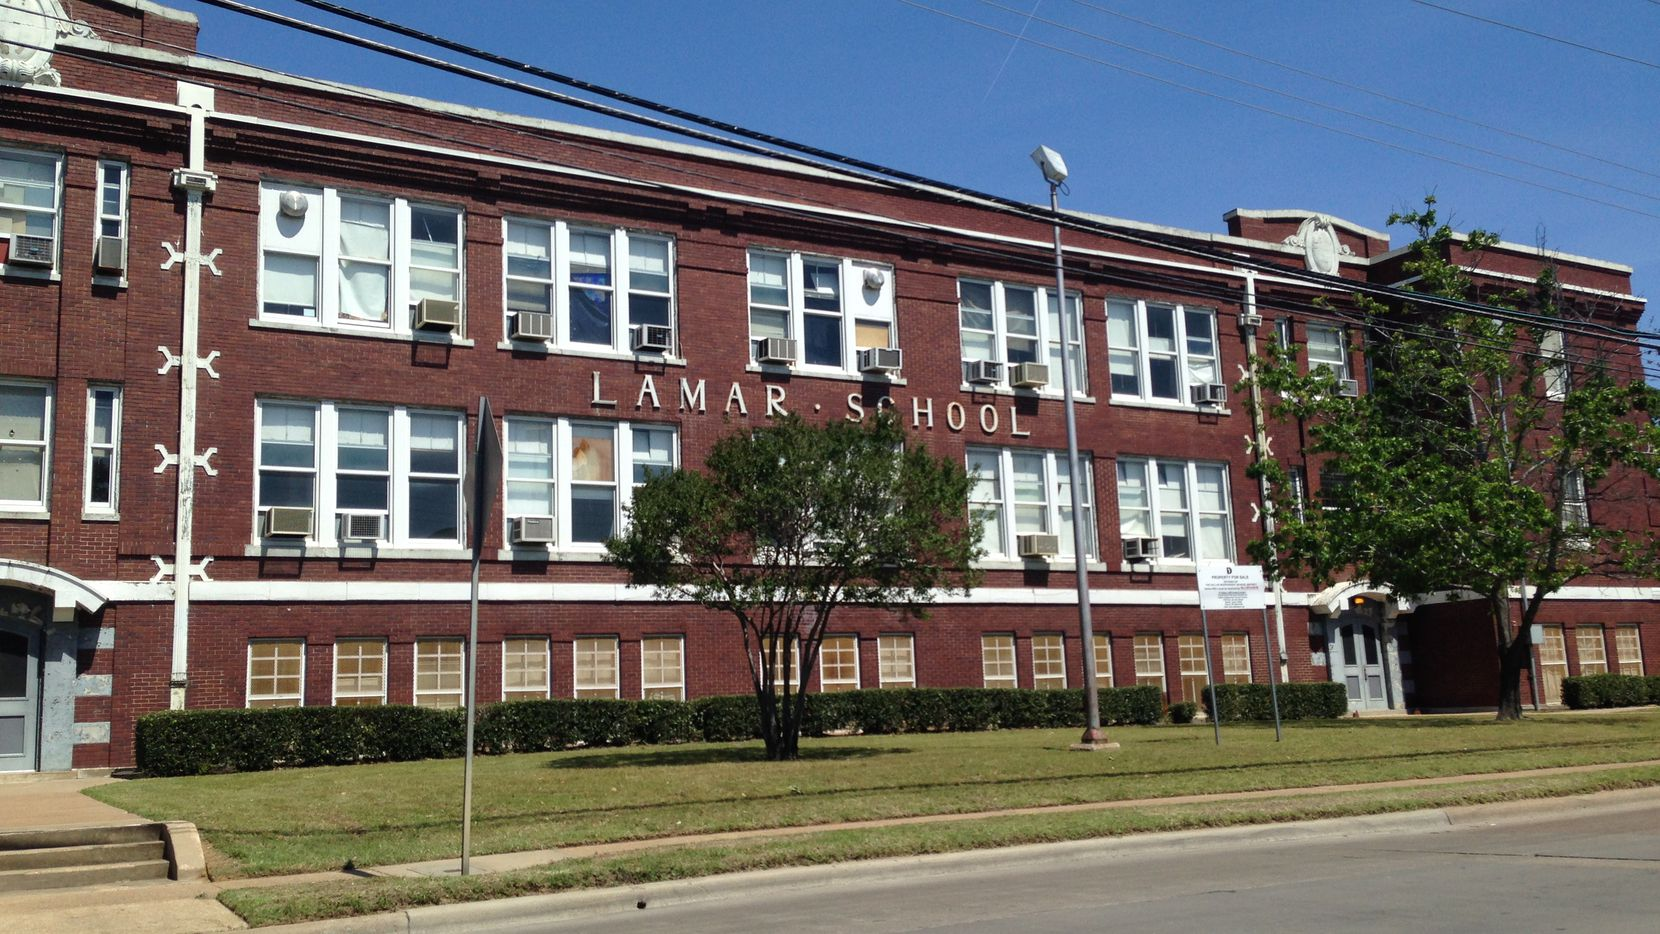 The historic Lamar School south of downtown Dallas is one of the properties DISD sold to developers, who plan to convert it to apartments.